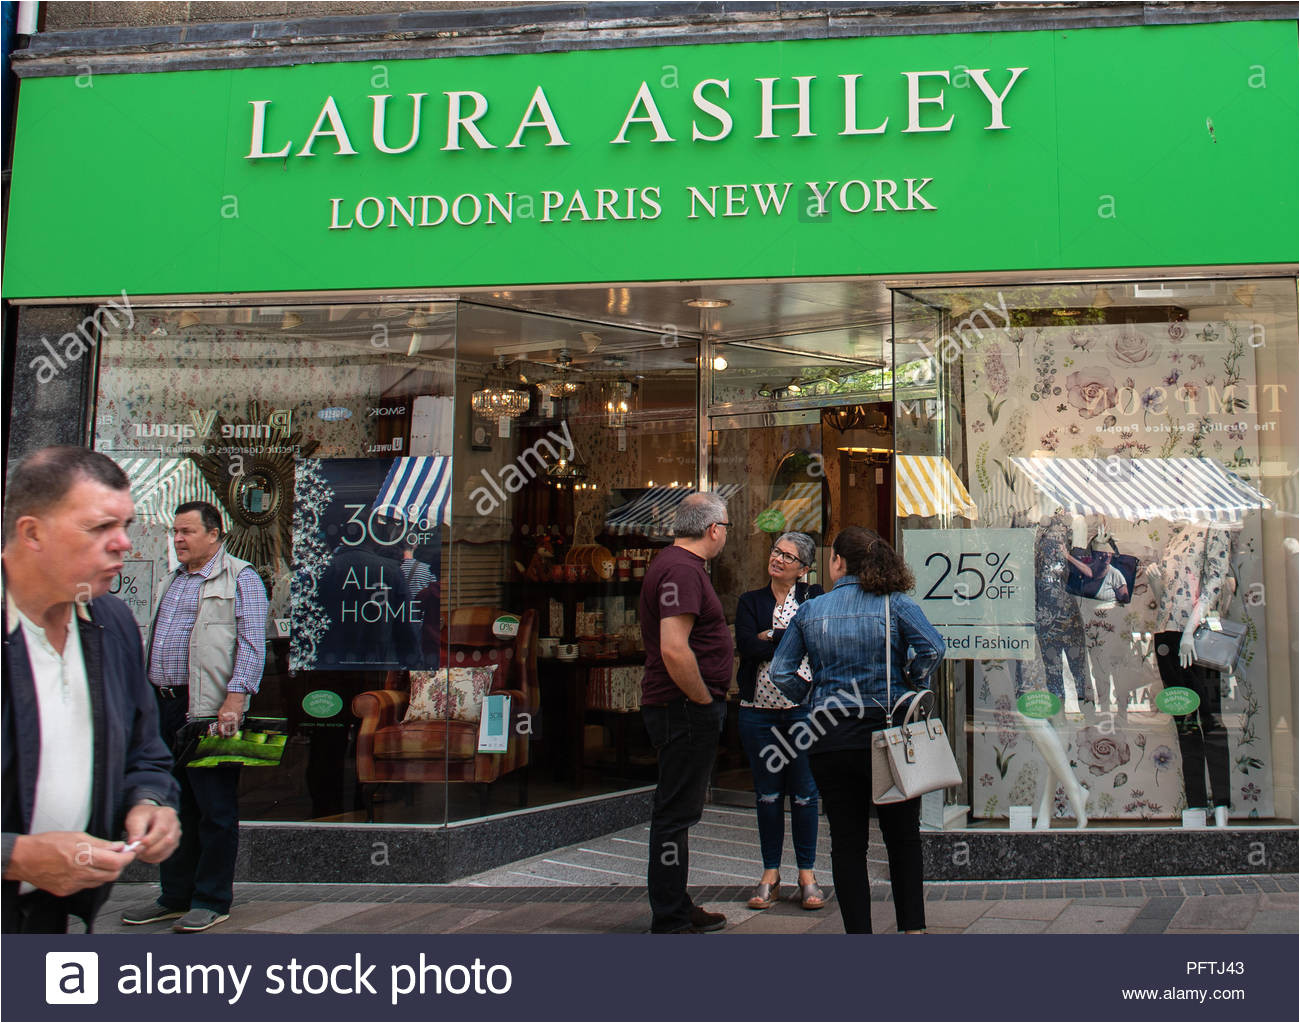 stirling groa britannien 11 august 2018 laura ashley store im hafen straa e stockbild